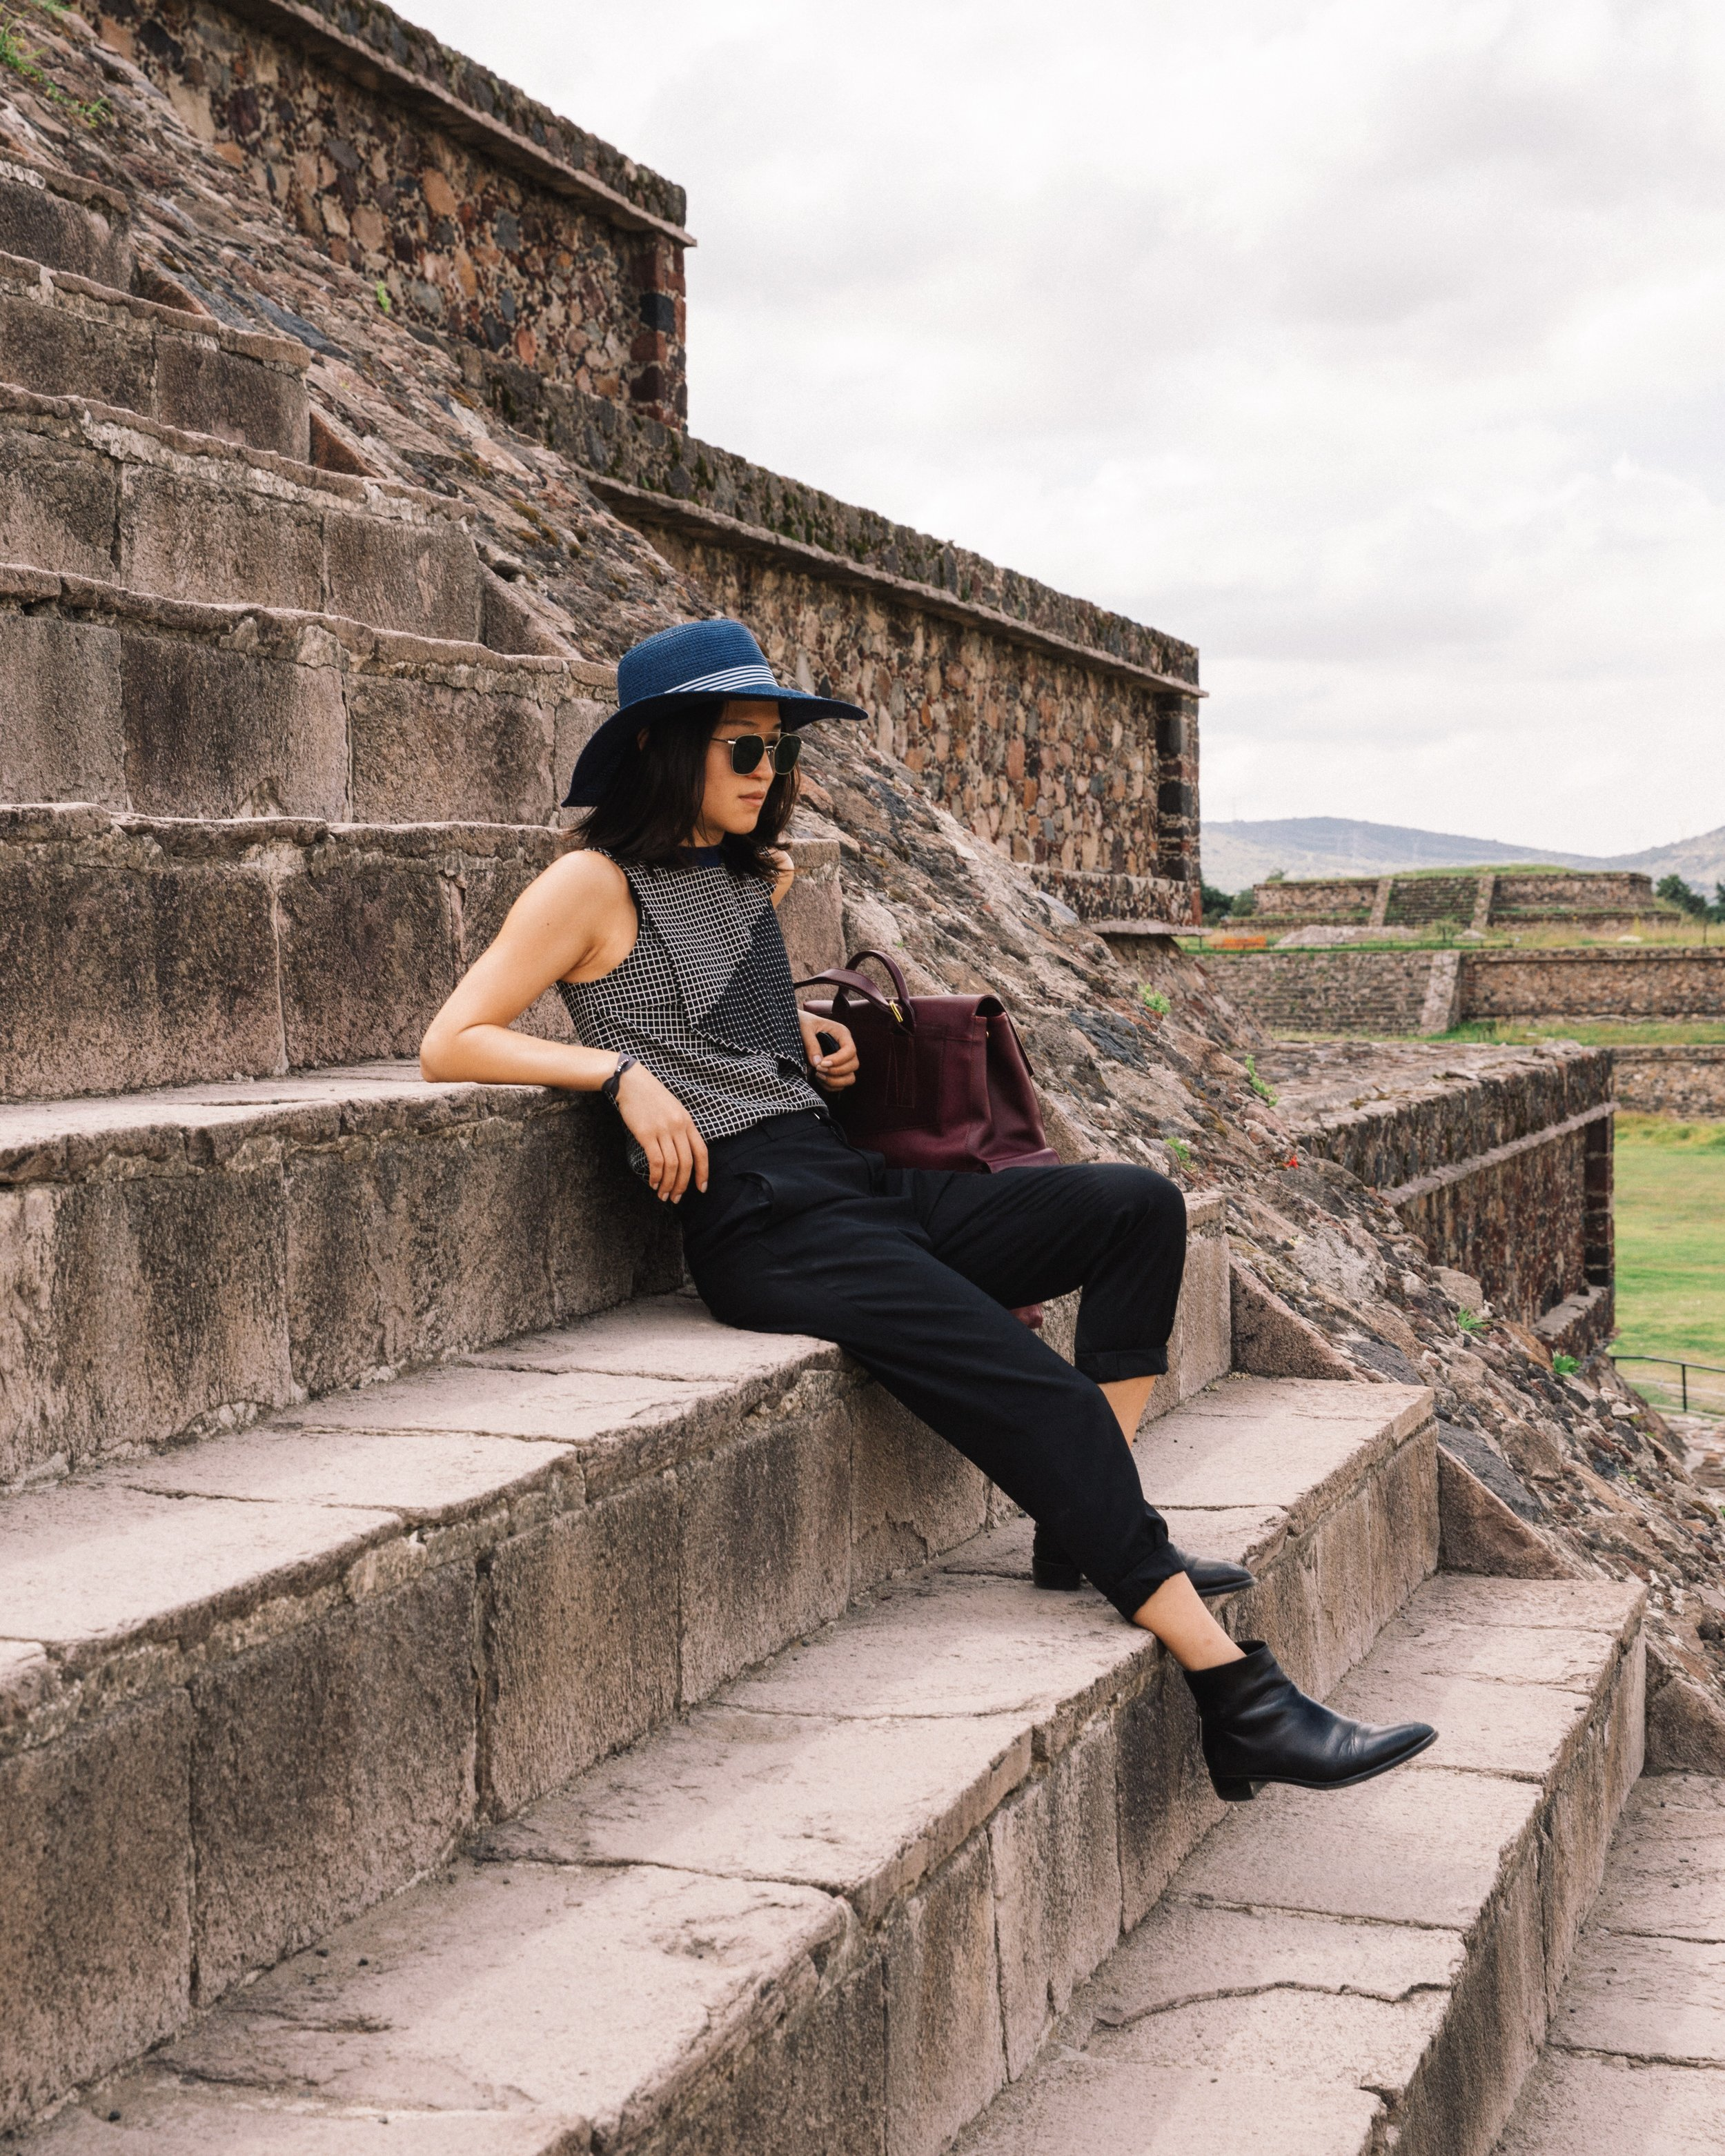 carven top, steven alan trousers, barneys ny leather boots, kent and curwen backpack, ahlem sunglasses, teotihuacan souvenir hat | photo by  Daniel Han